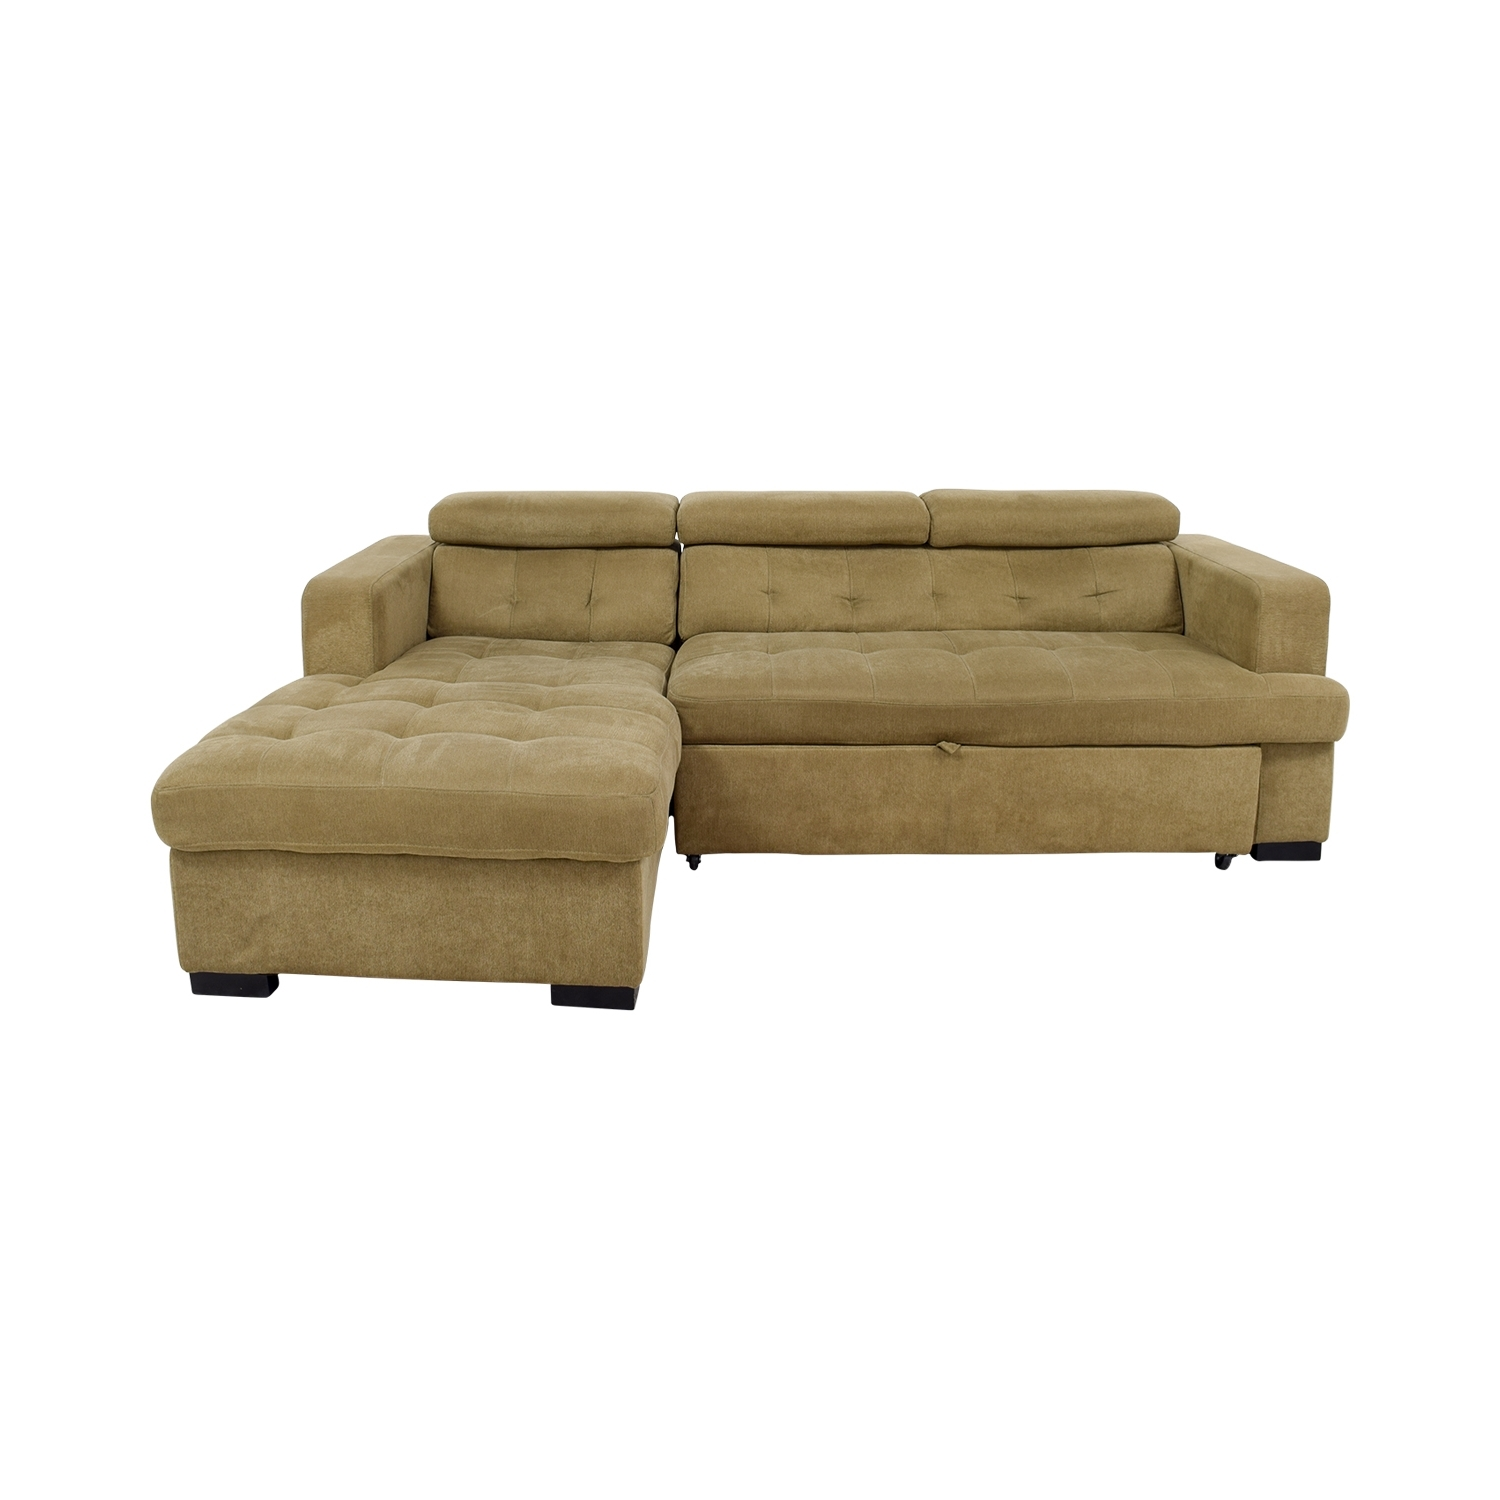 [%59% Off – Bob's Furniture Bob's Furniture Gold Chaise Sectional Intended For Well Liked Sleeper Chaise Sofas Sleeper Chaise Sofas For Widely Used 59% Off – Bob's Furniture Bob's Furniture Gold Chaise Sectional Most Recent Sleeper Chaise Sofas Inside 59% Off – Bob's Furniture Bob's Furniture Gold Chaise Sectional Well Liked 59% Off – Bob's Furniture Bob's Furniture Gold Chaise Sectional Within Sleeper Chaise Sofas%] (View 15 of 15)